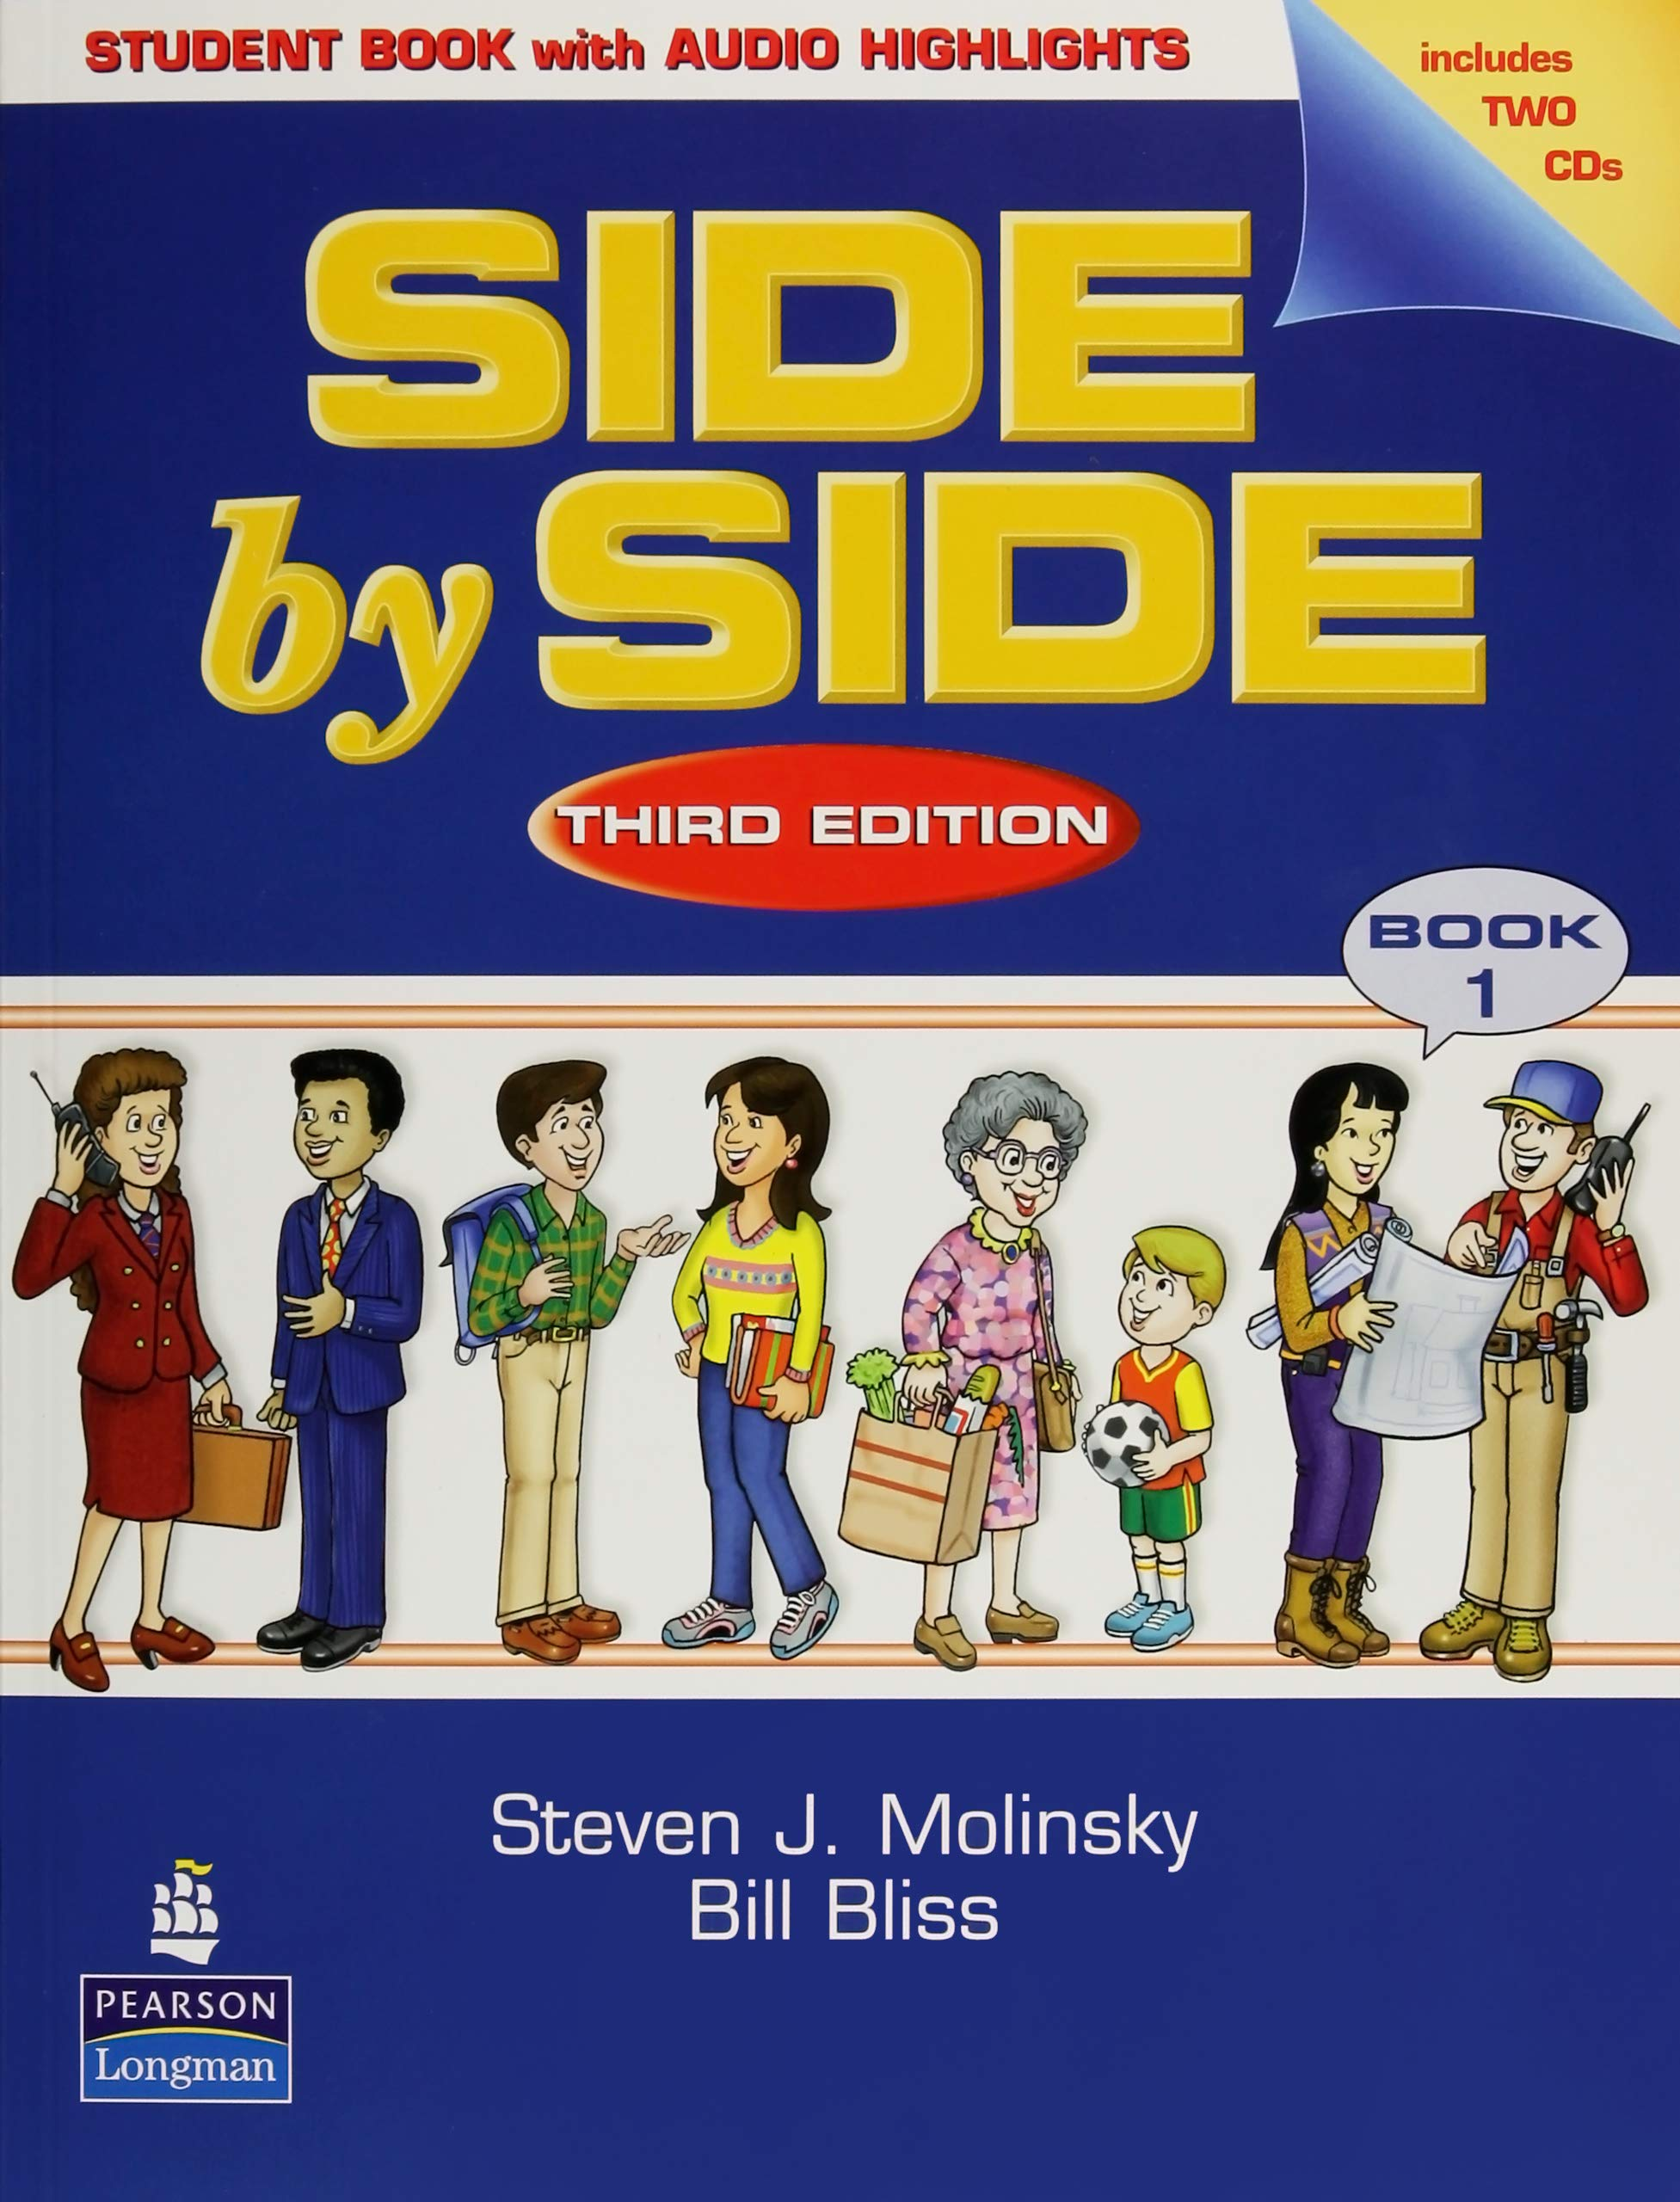 Side by Side 1 Student Book 1 w/ Student Audio CD Highlights: Steven J.  Molinsky, Bill Bliss: 9780131119598: Foreign Languages: Amazon Canada